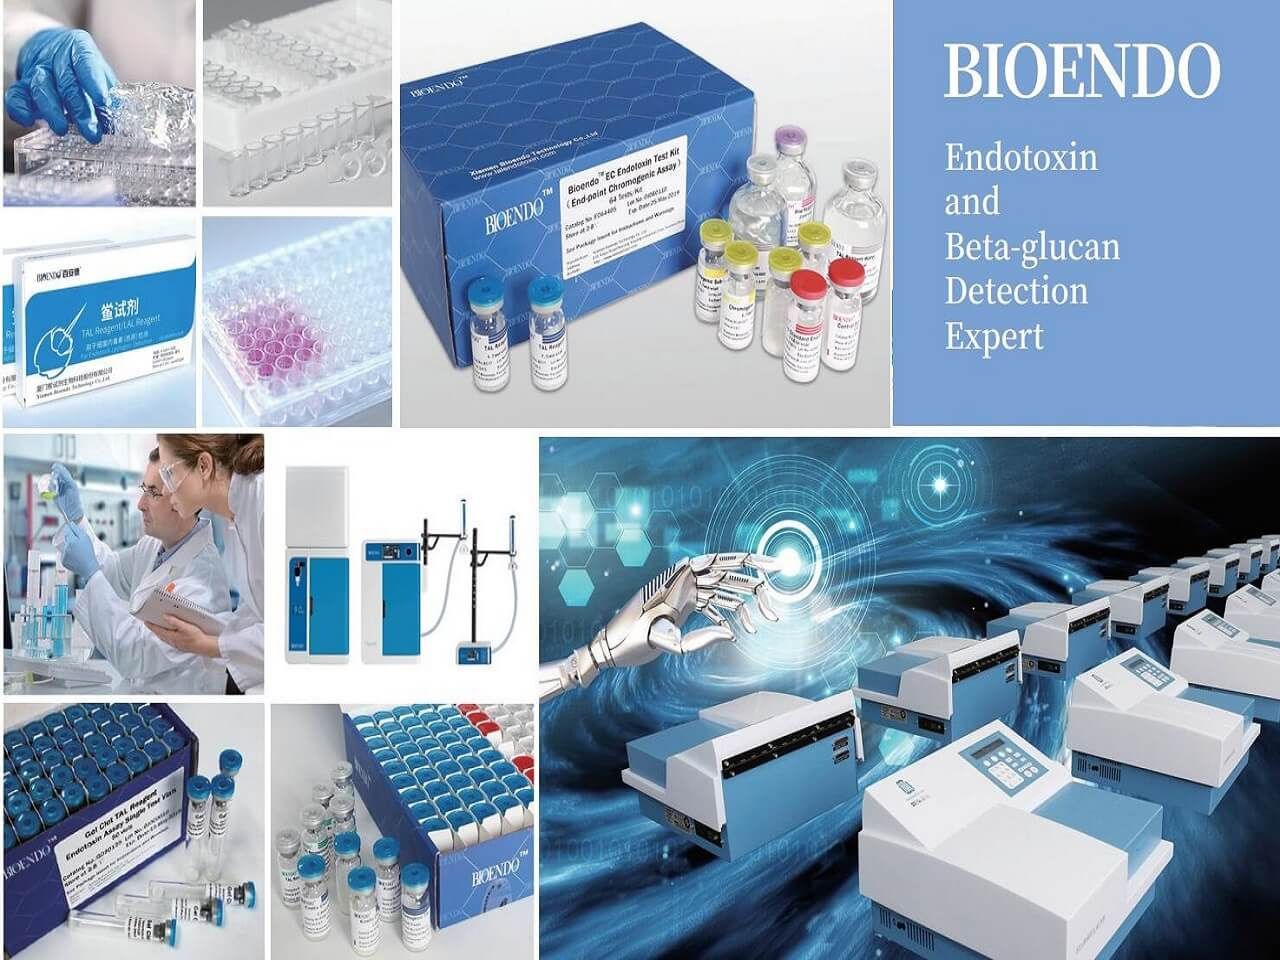 Bioendo in Analitica Latin America with Booth No. CP06-1